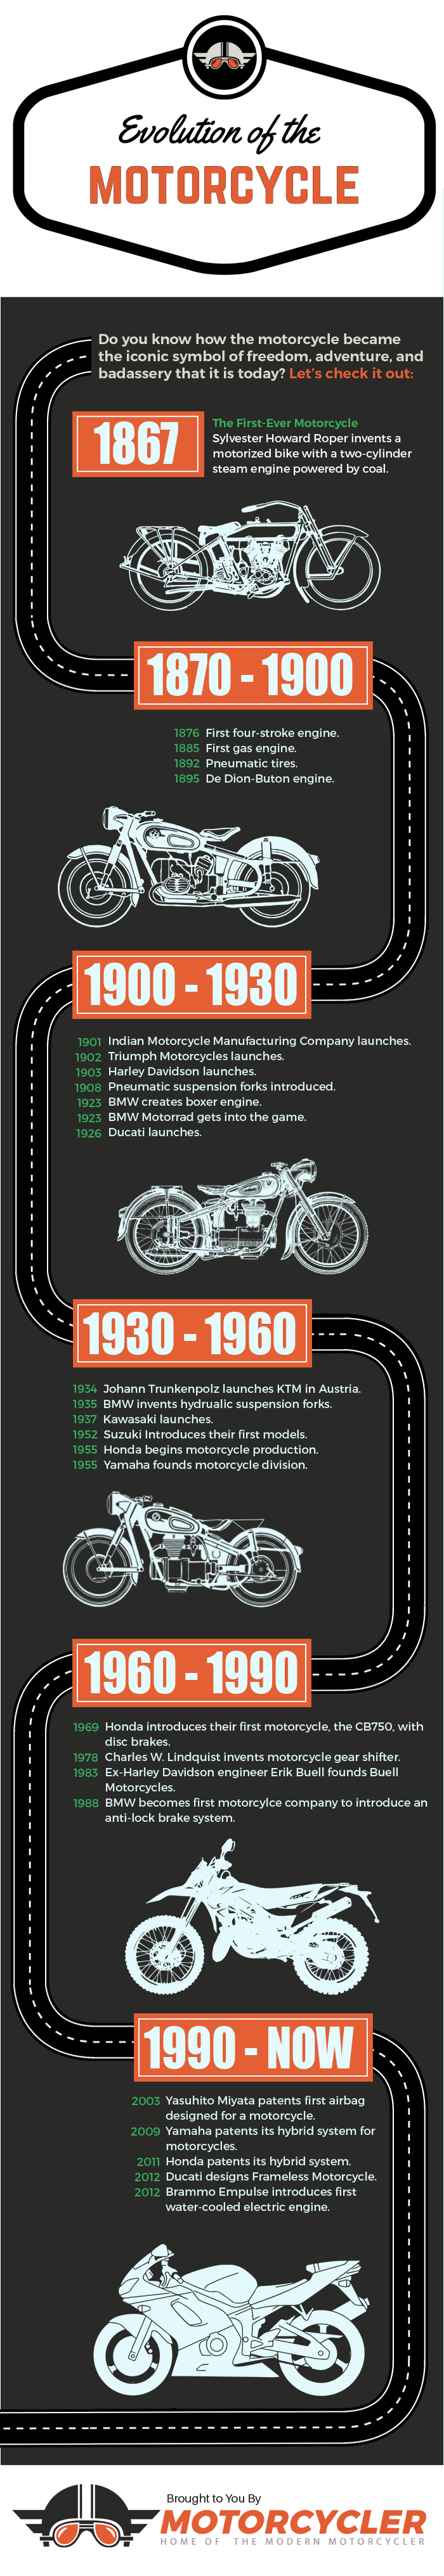 Motorcycle Evolution